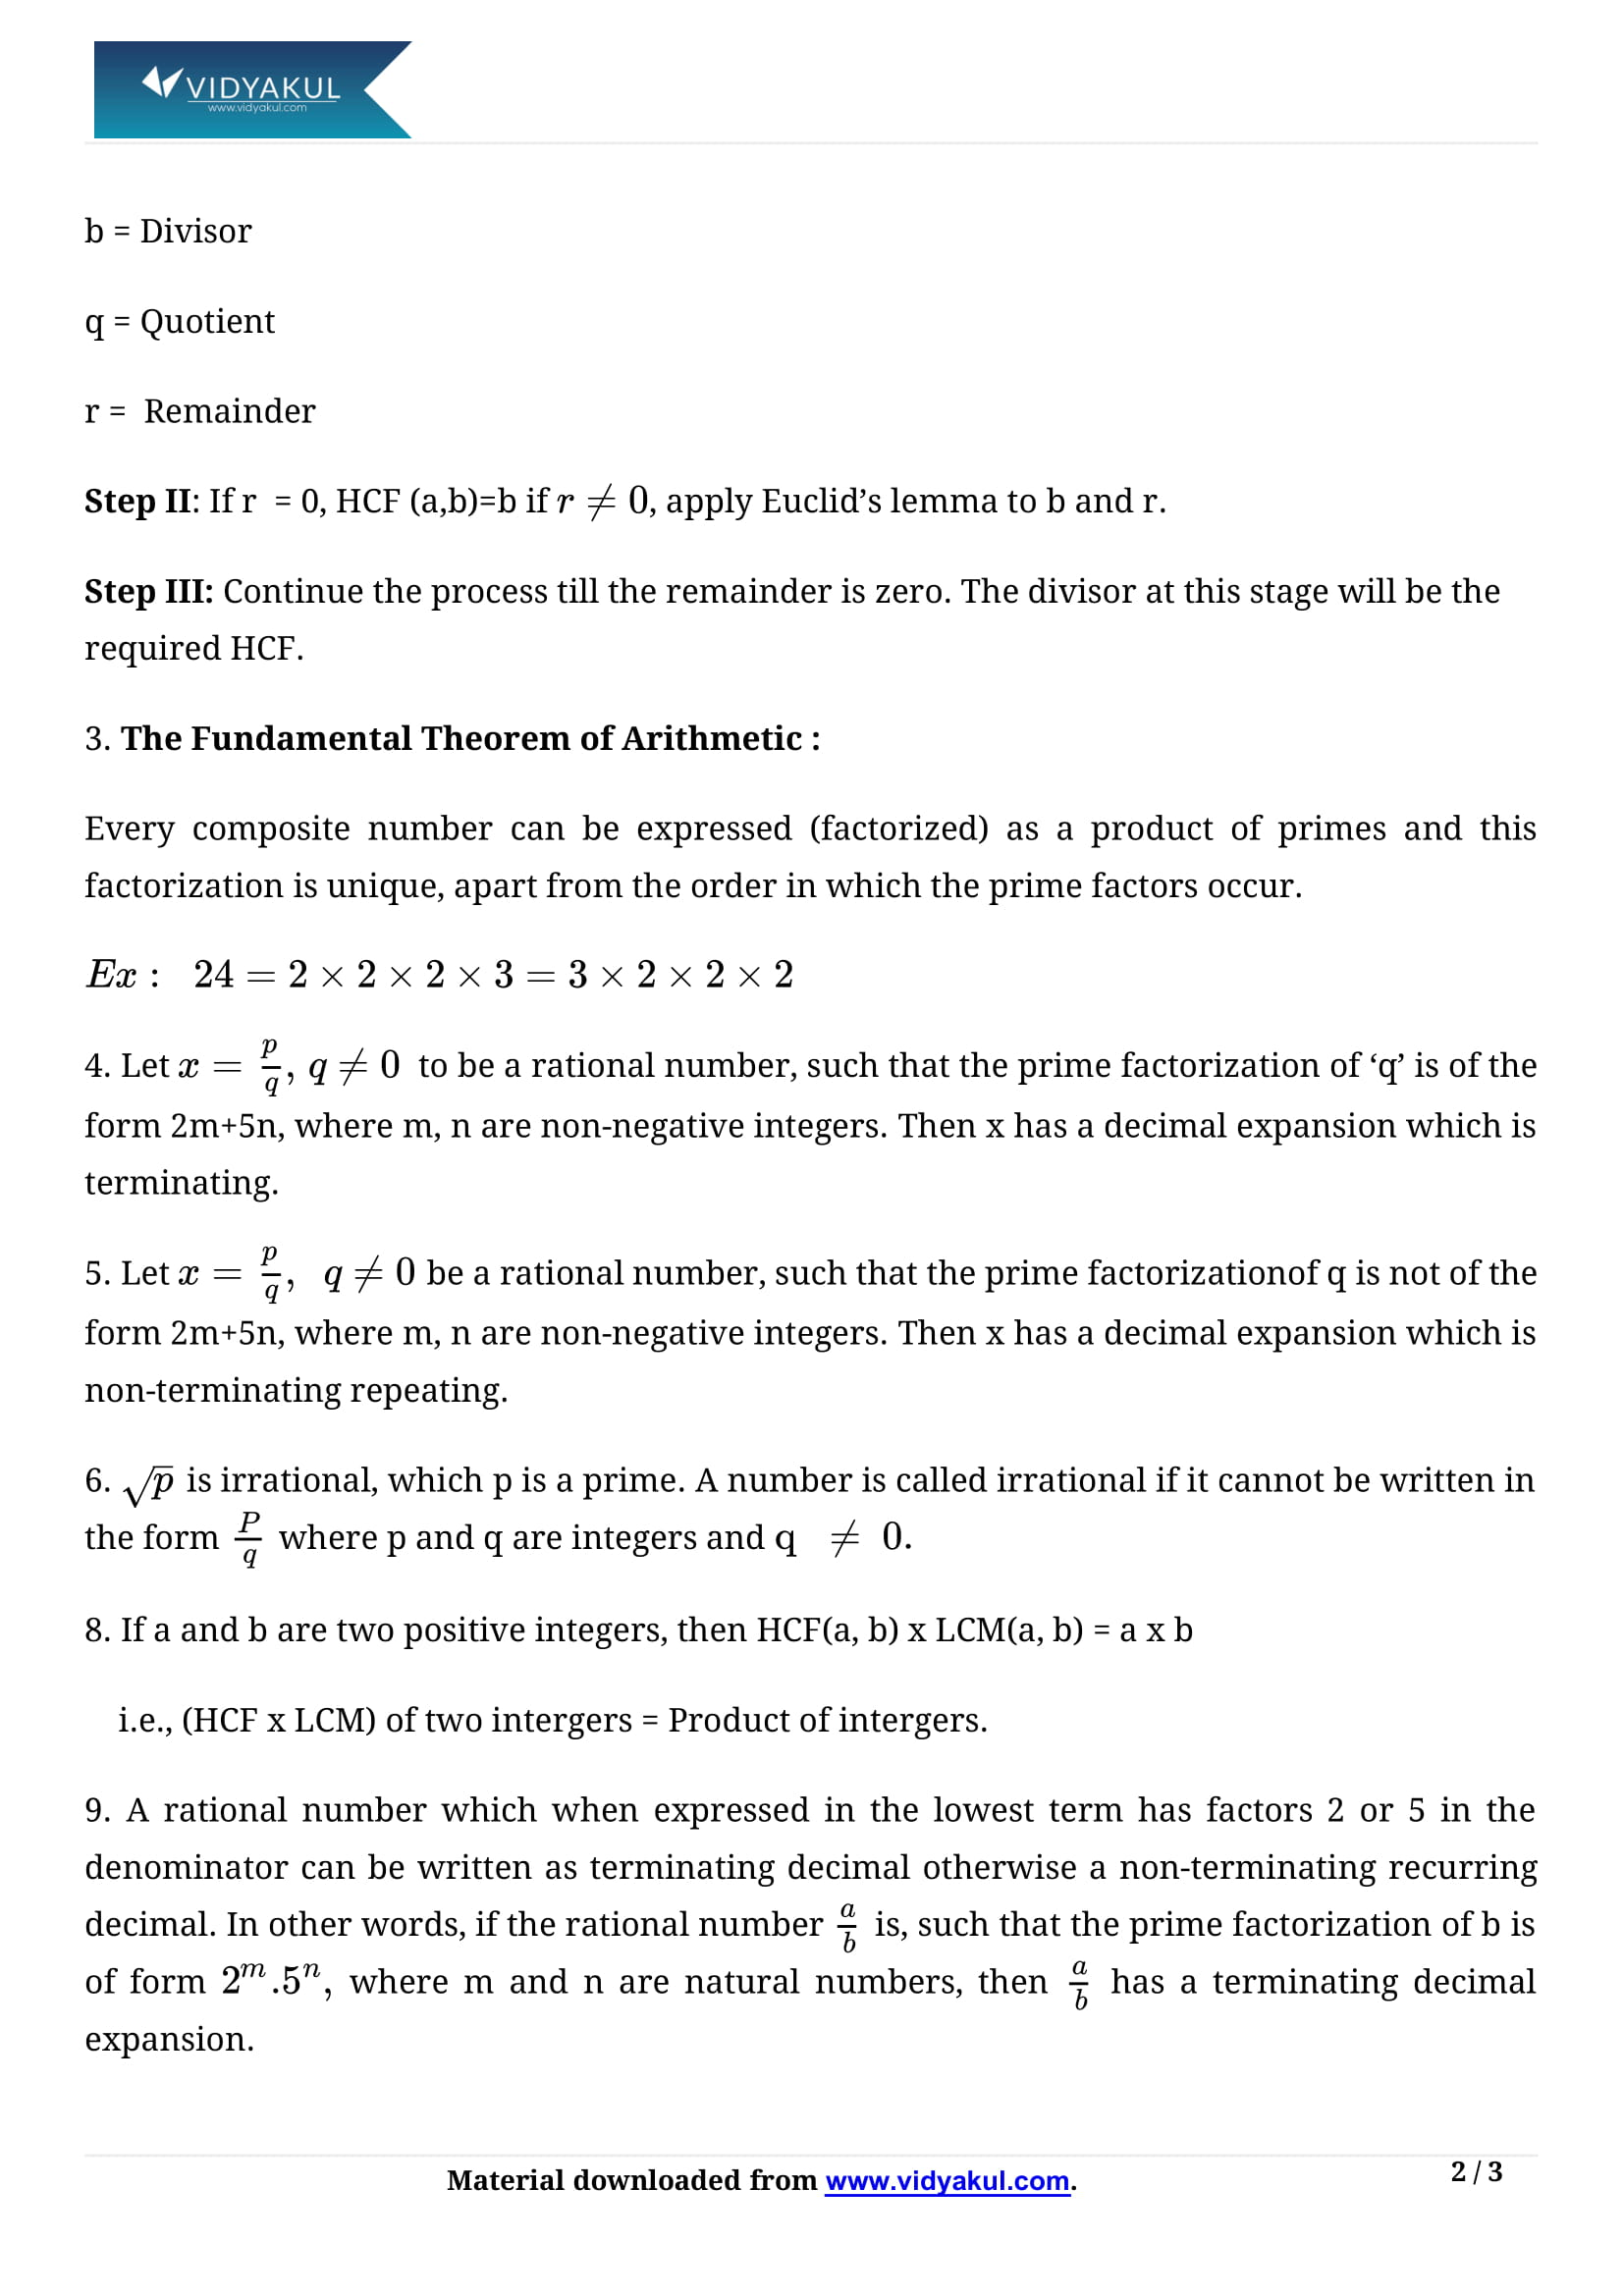 Real Numbers Class 10 Notes   Vidyakul